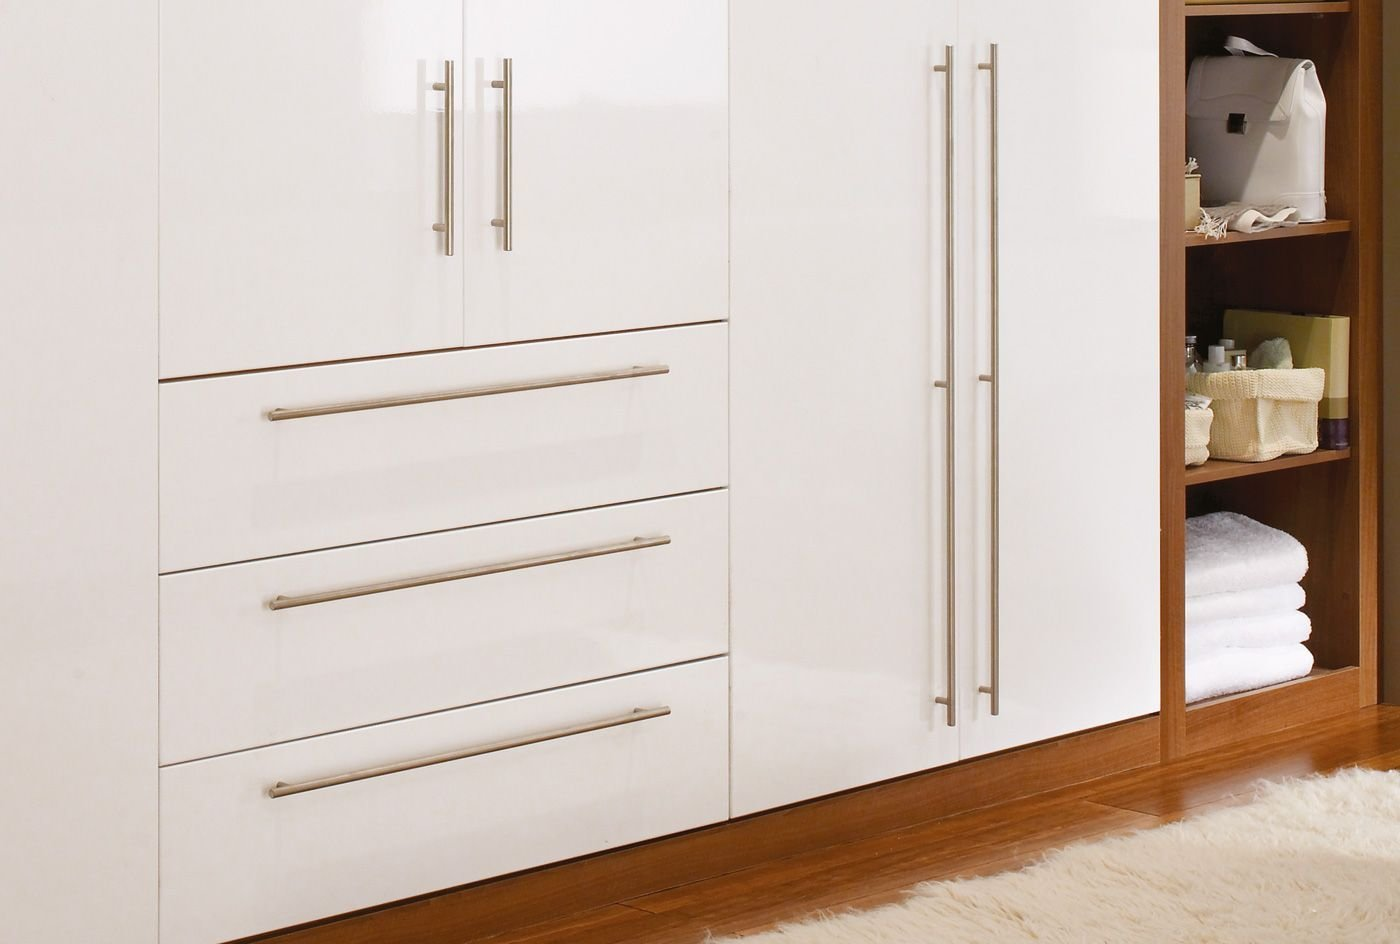 Best High Gloss Wardrobe Doors And Simple Handles Being With Pictures